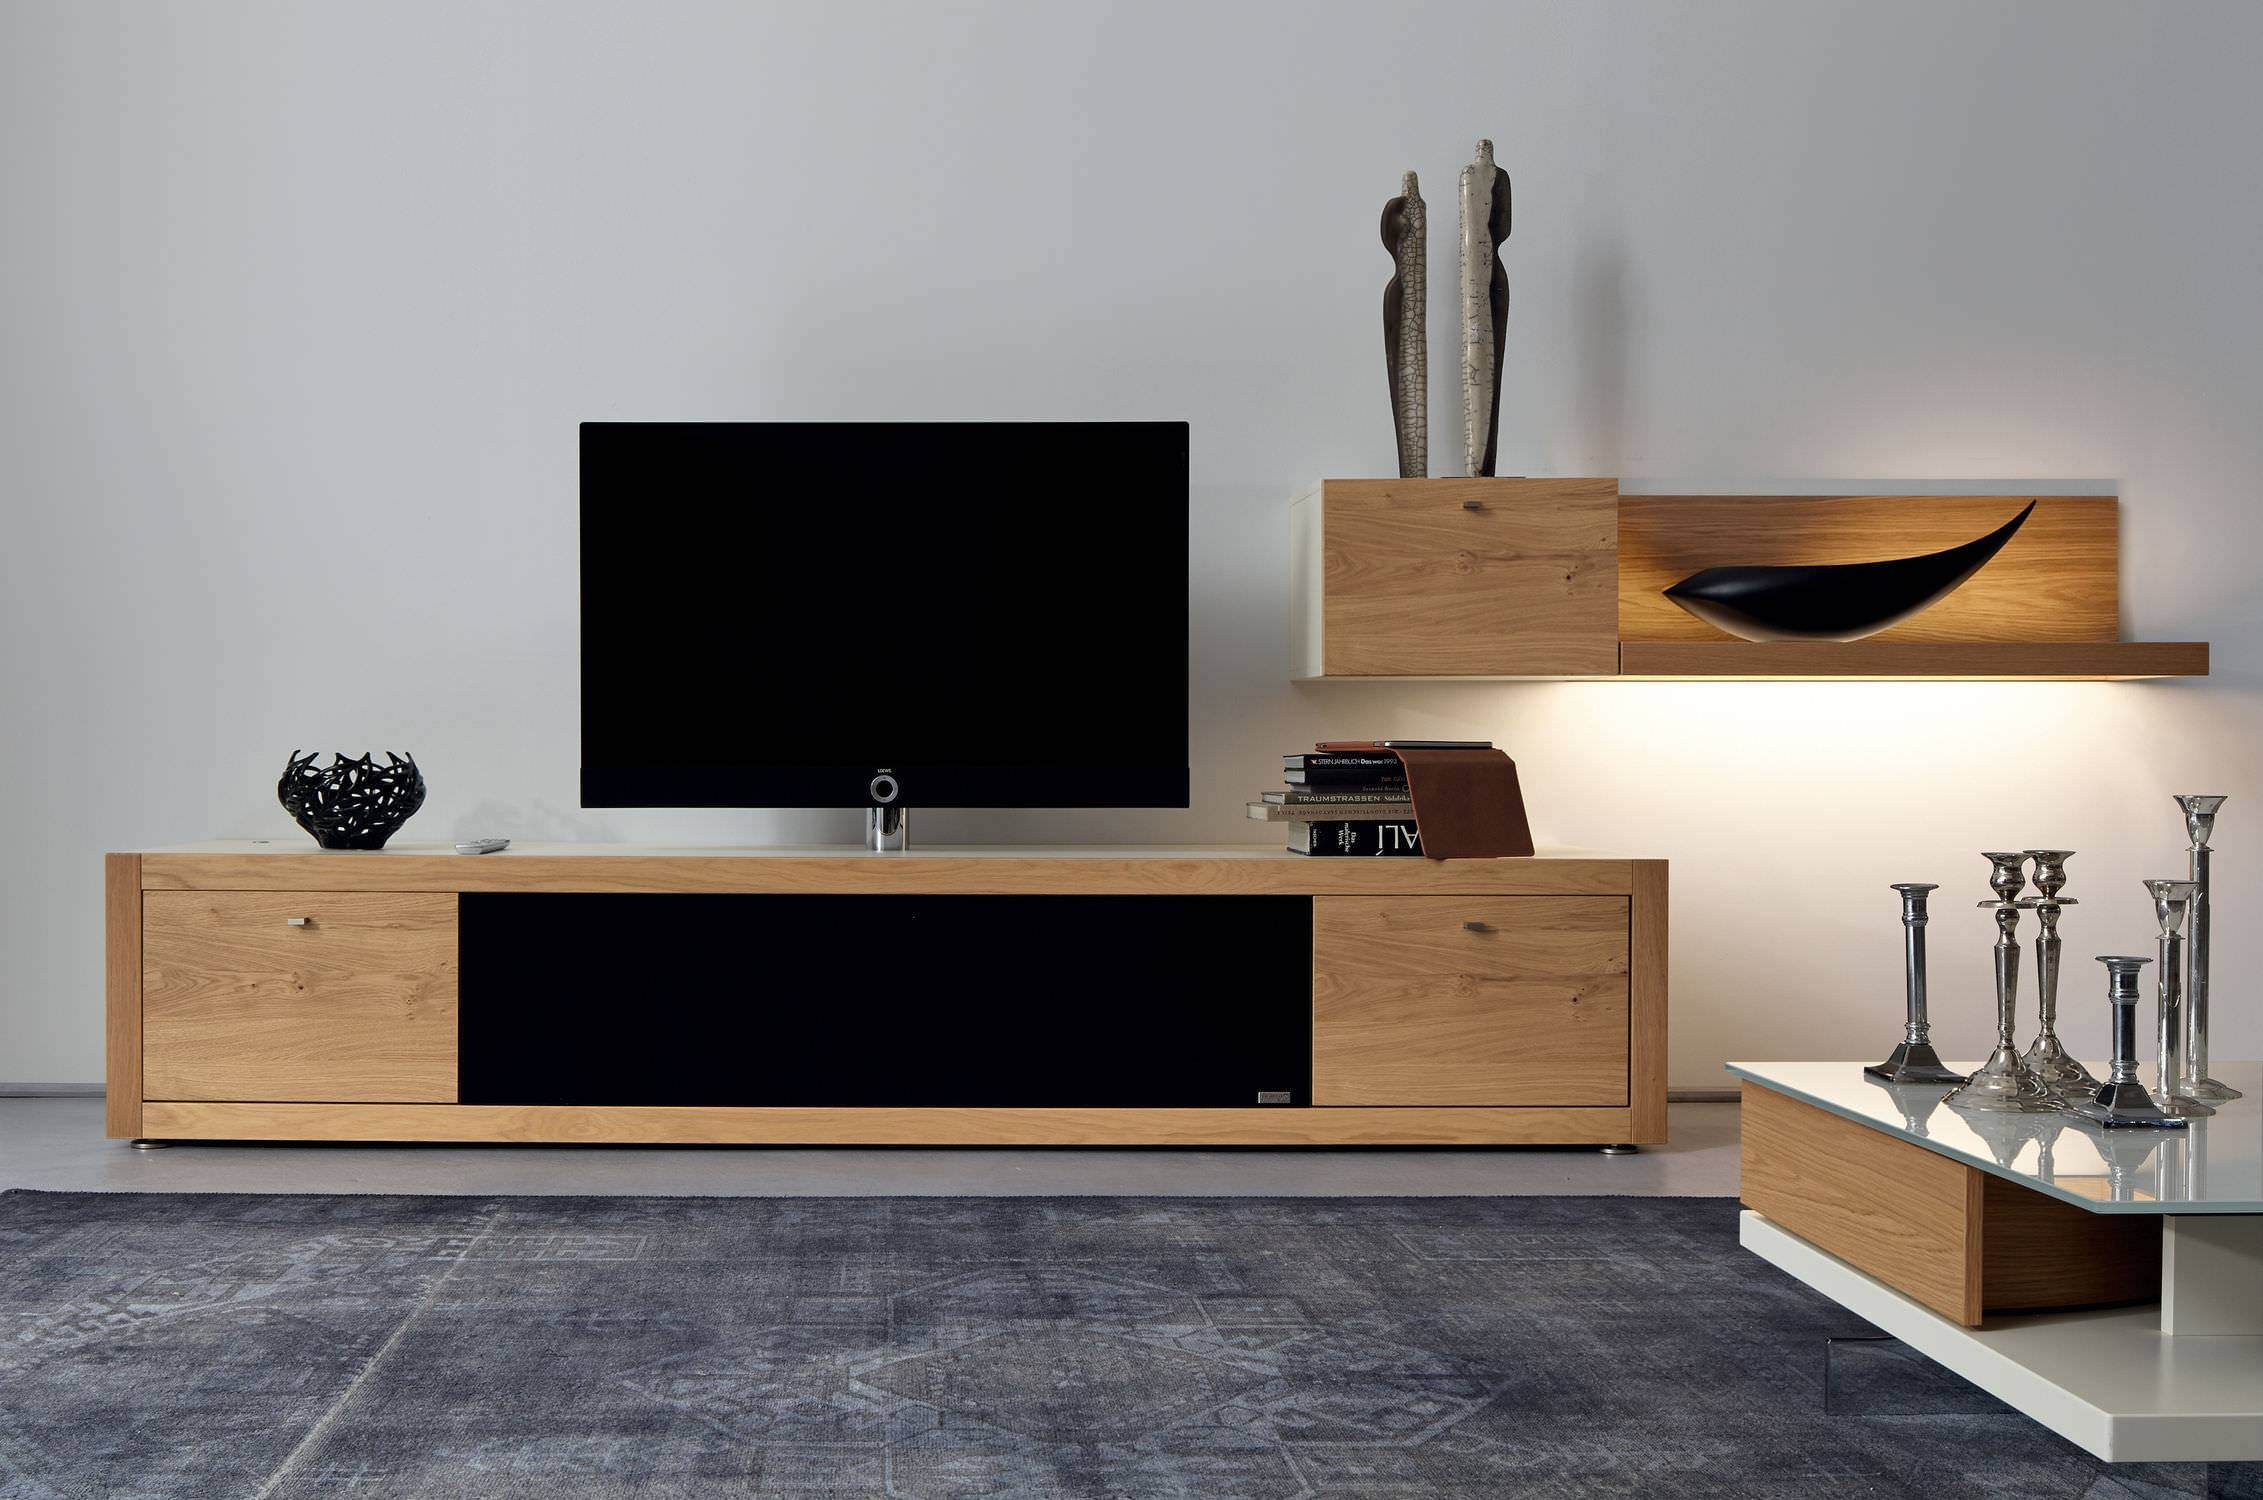 Furniture Trendy Tv Units For The Stylish Modern Home Minimalist within Contemporary Oak Tv Stands (Image 5 of 15)